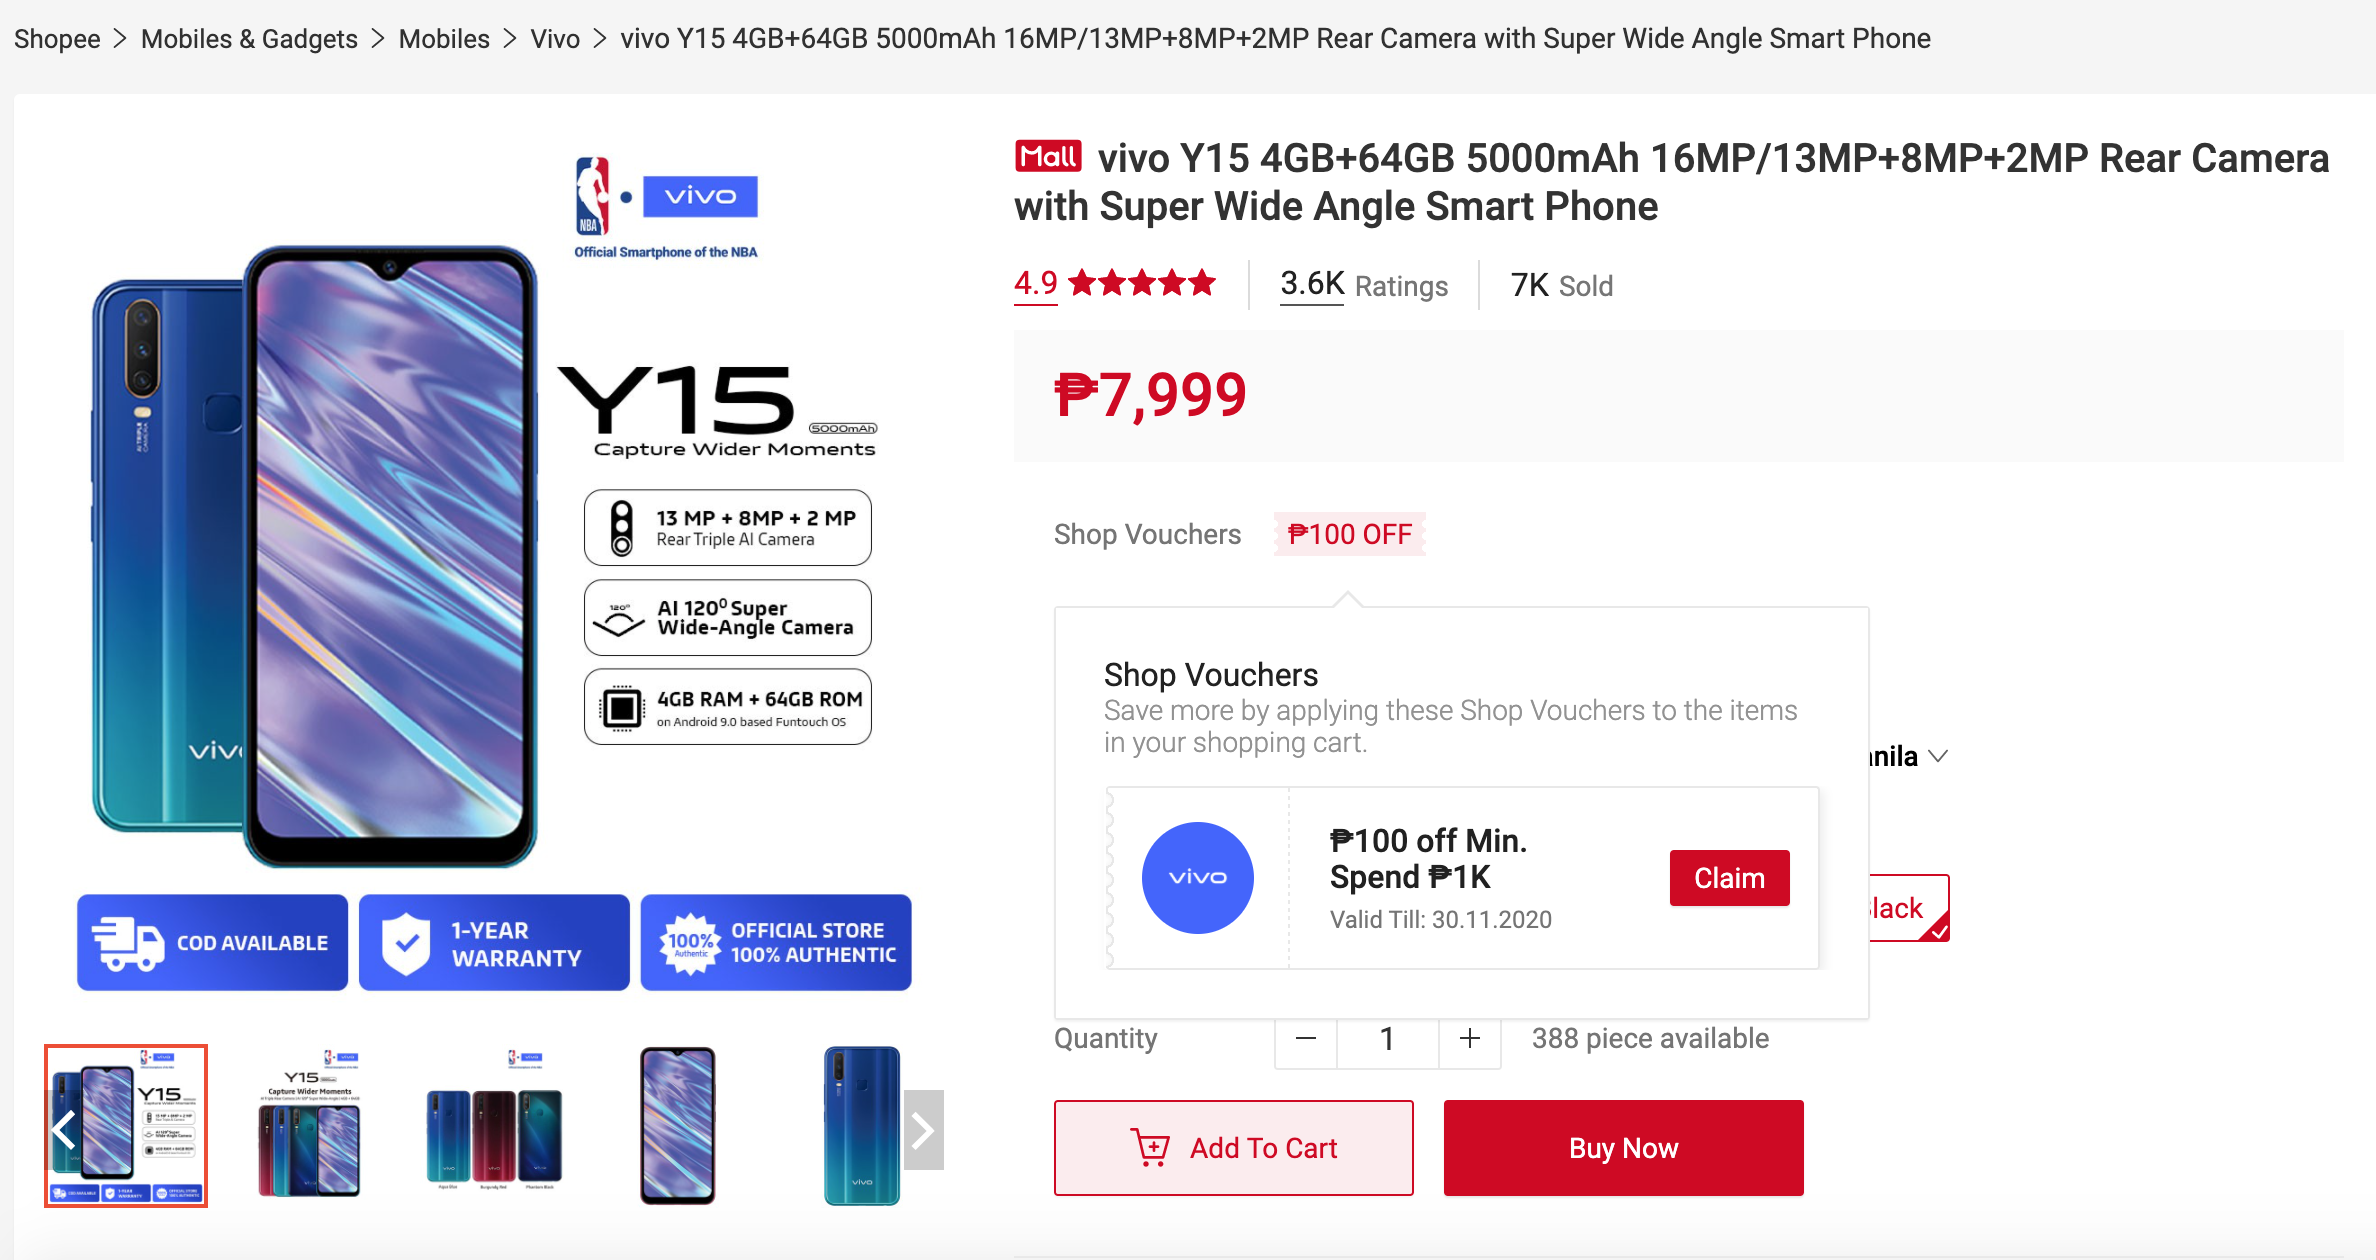 ●	Up to 33% off on Vivo Super Brand Day from October 23-25